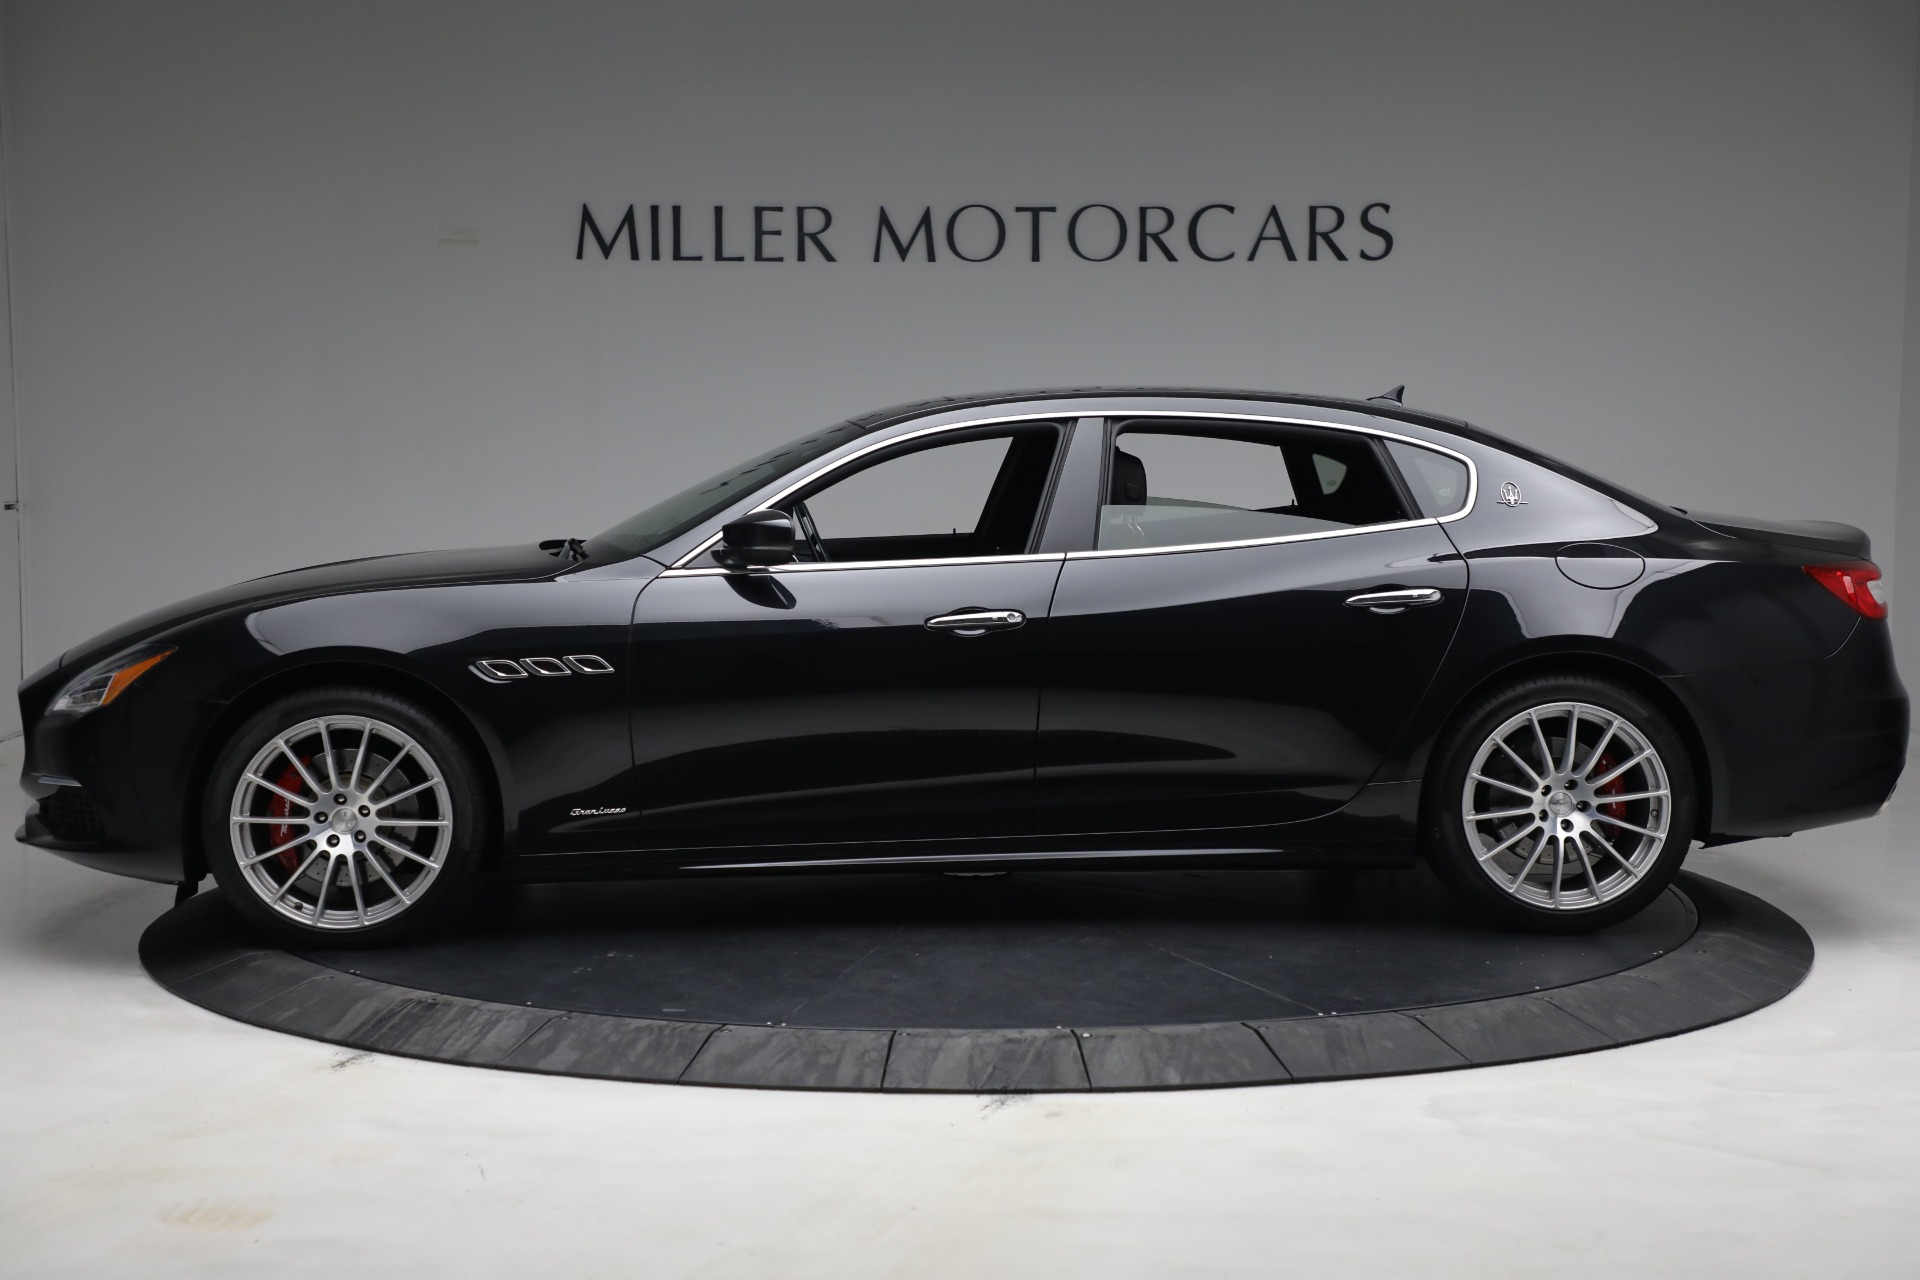 New 2019 Maserati Quattroporte S Q4 GranLusso For Sale In Greenwich, CT 2619_p3